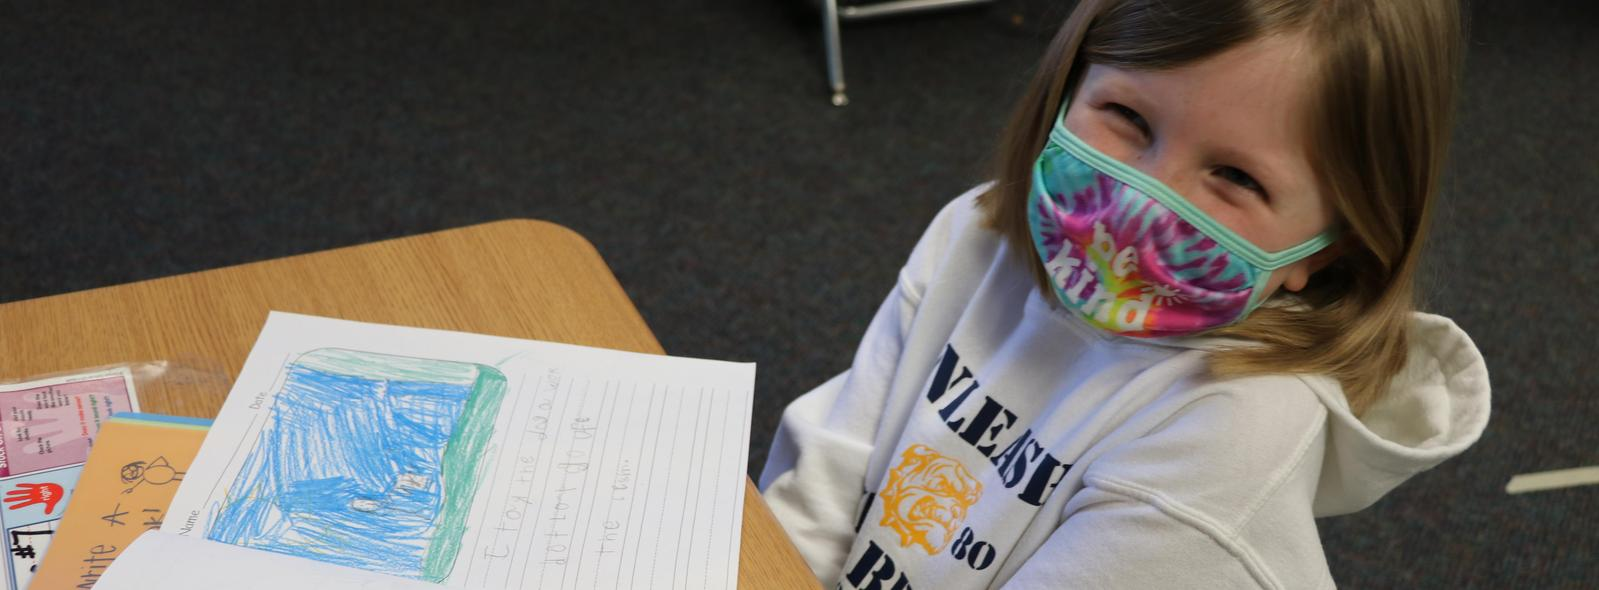 girl with tie dye mask on smiling at desk.